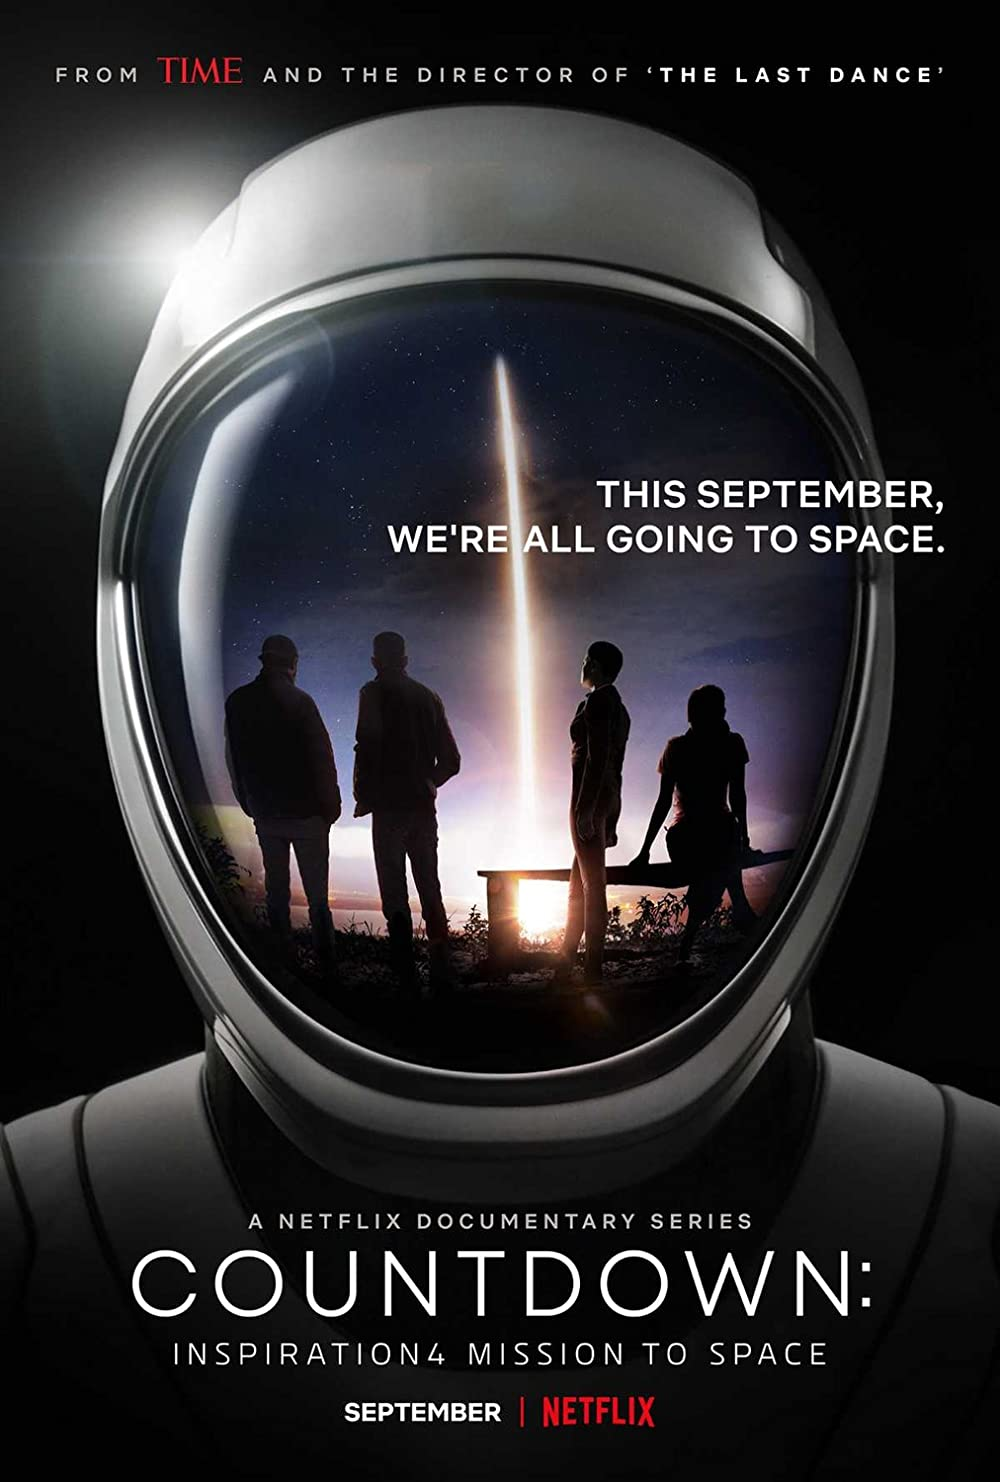 Countdown: Inspiration4 Mission to Space - Season 1| Watch Movies Online